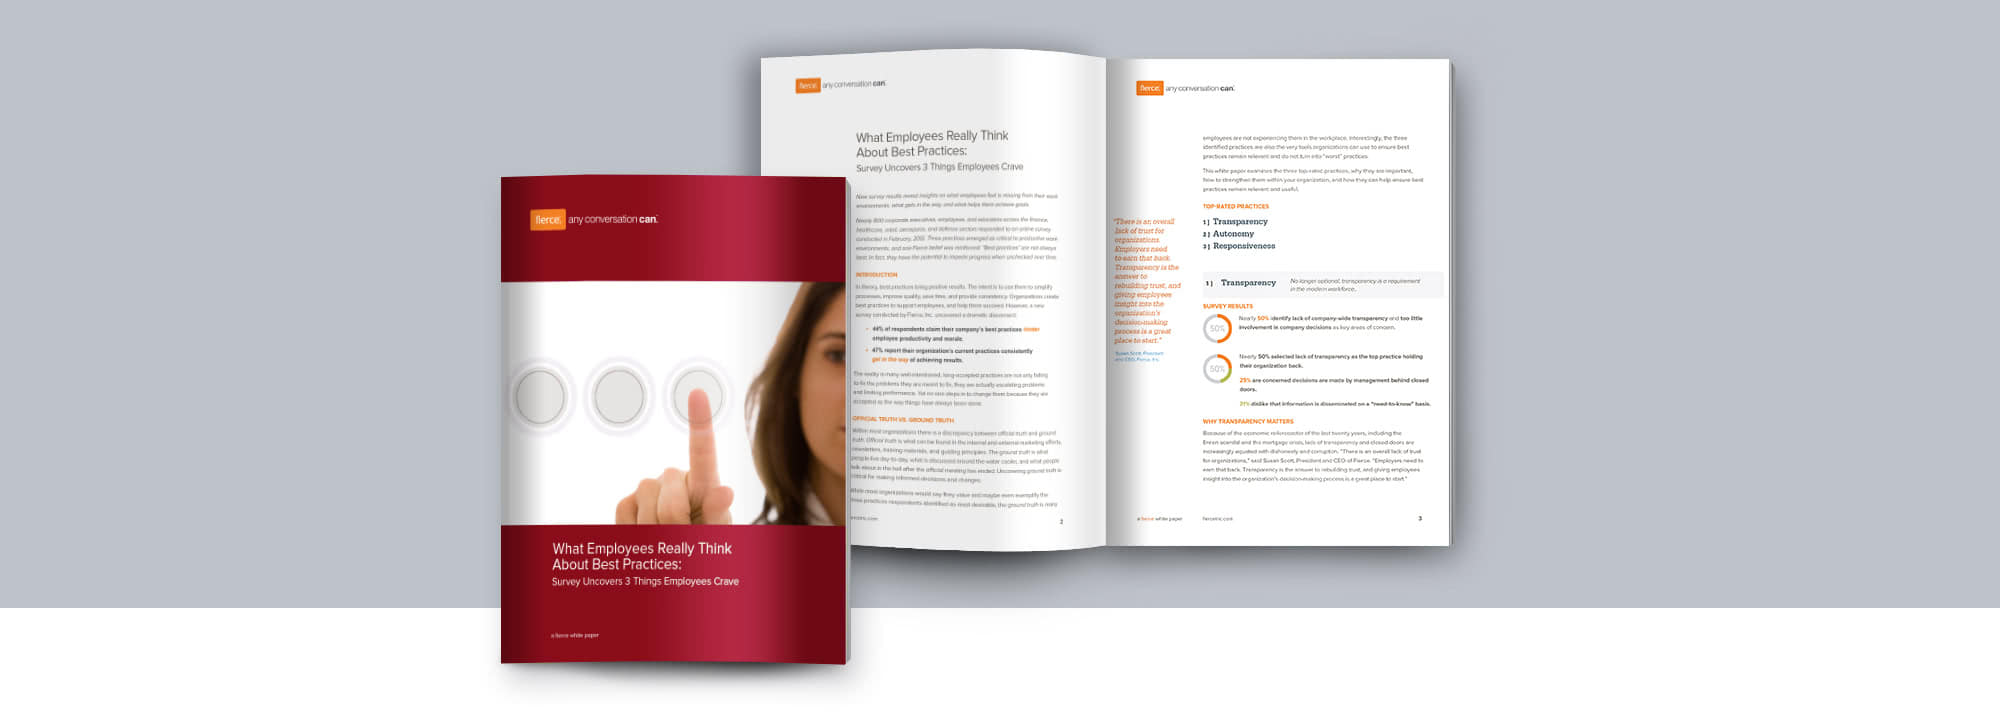 Fierce Conversations Whitepaper What Employees Really Think about Best Practices